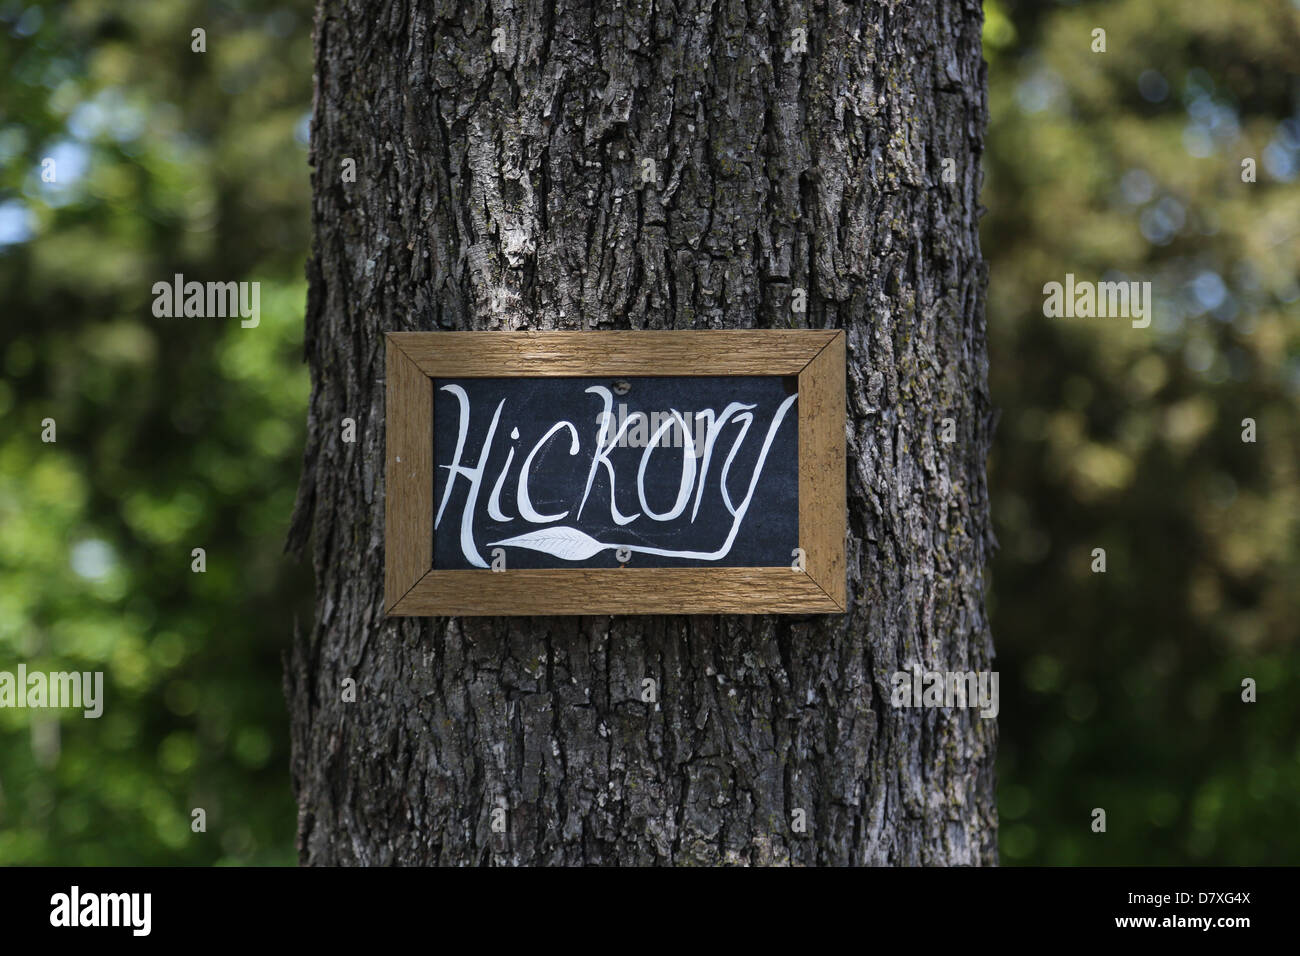 The trunk of a hickory tree labeled with an identifying sign. - Stock Image